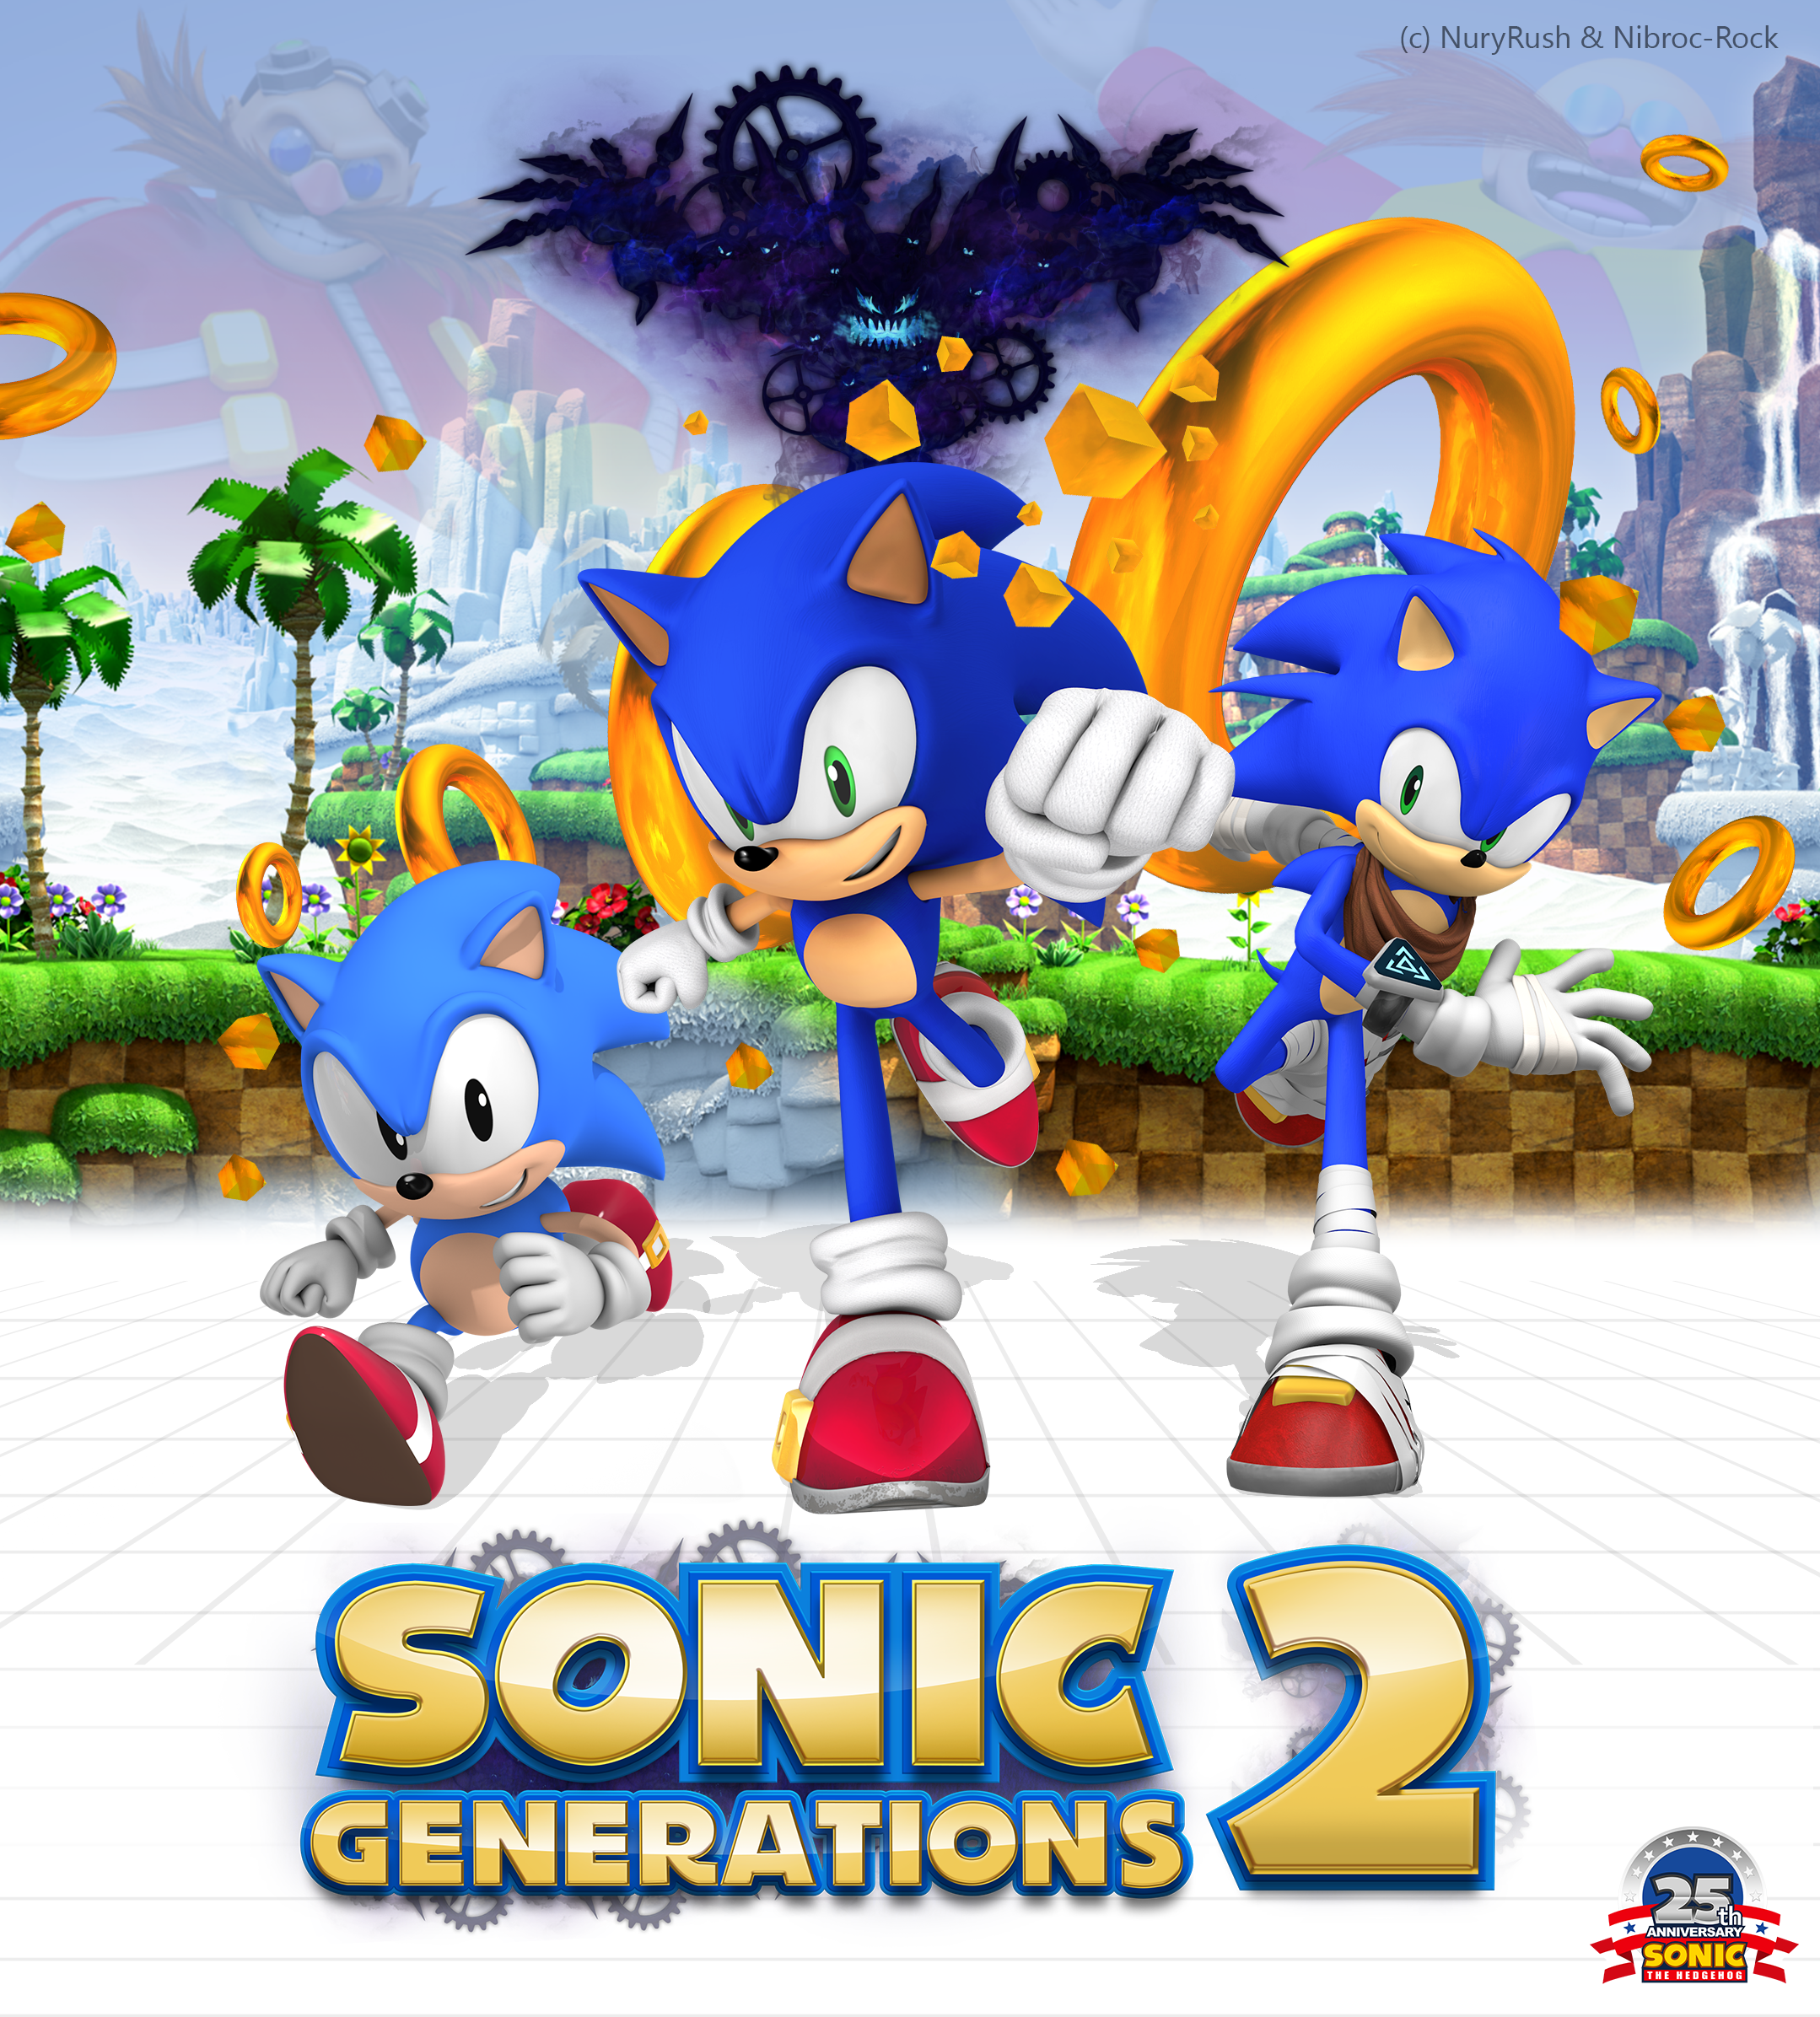 Sonic's 25th Anniversary Poster Remake SG2 Variant by NuryRush